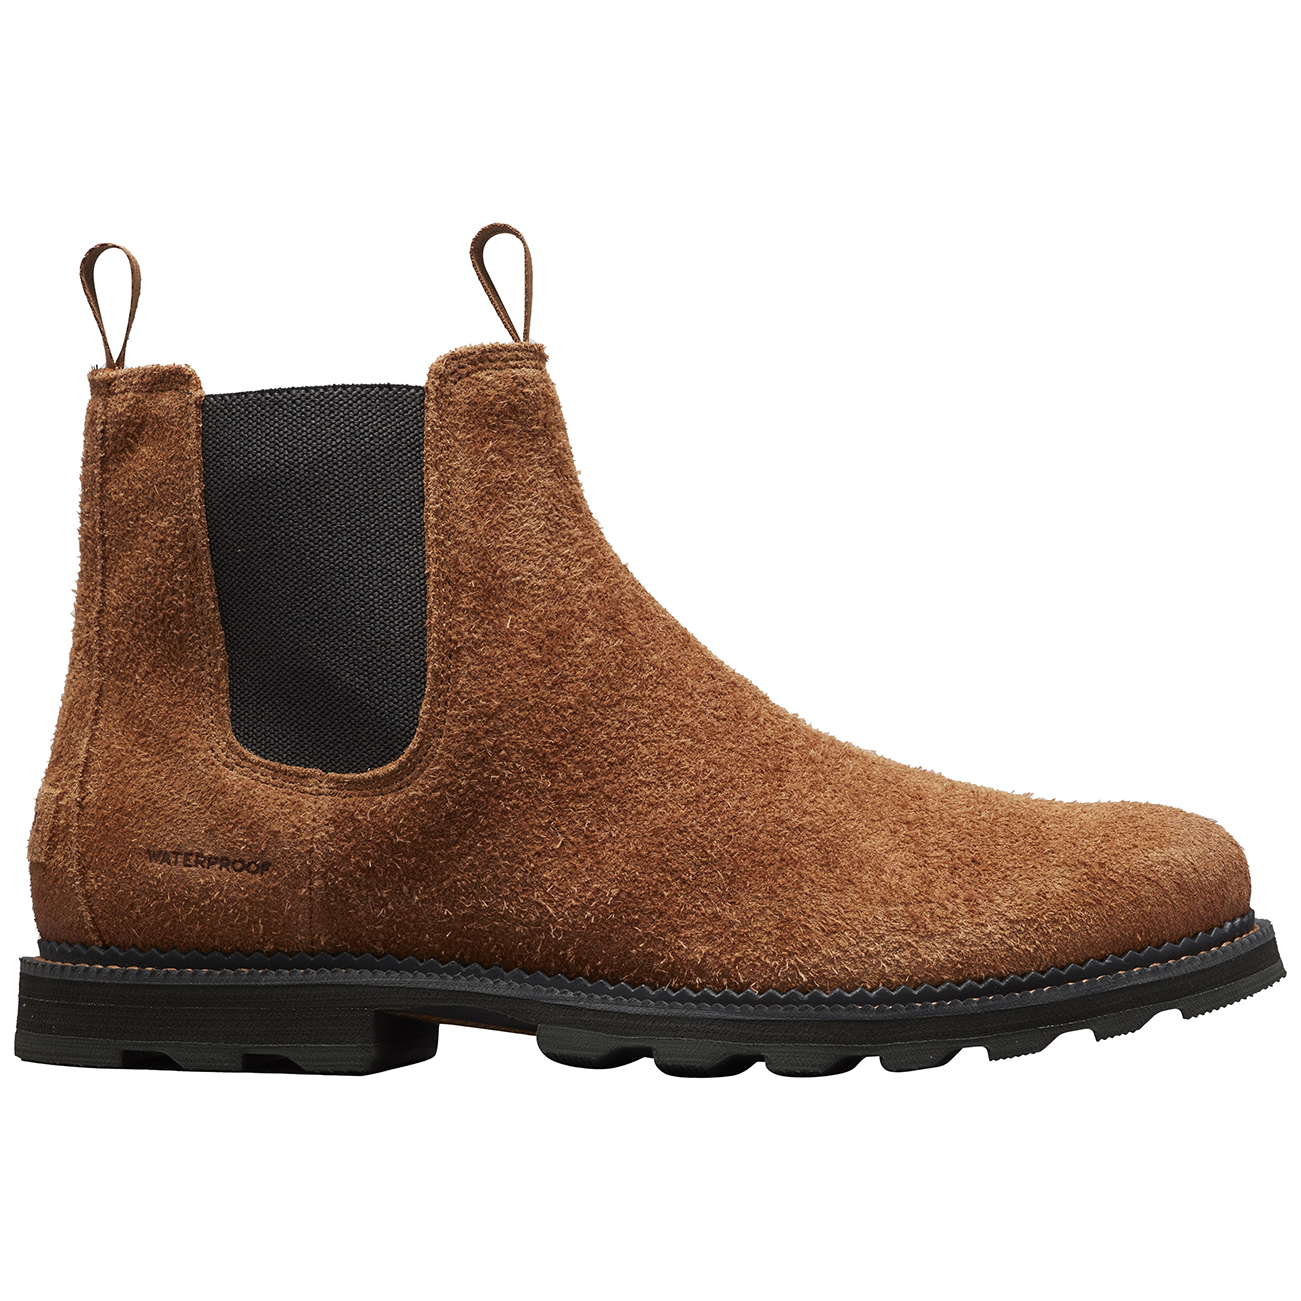 Details about Mens Sorel Madson Chelsea WP Rubber Sole Seam Sealed Waterproof Boots US 8 14